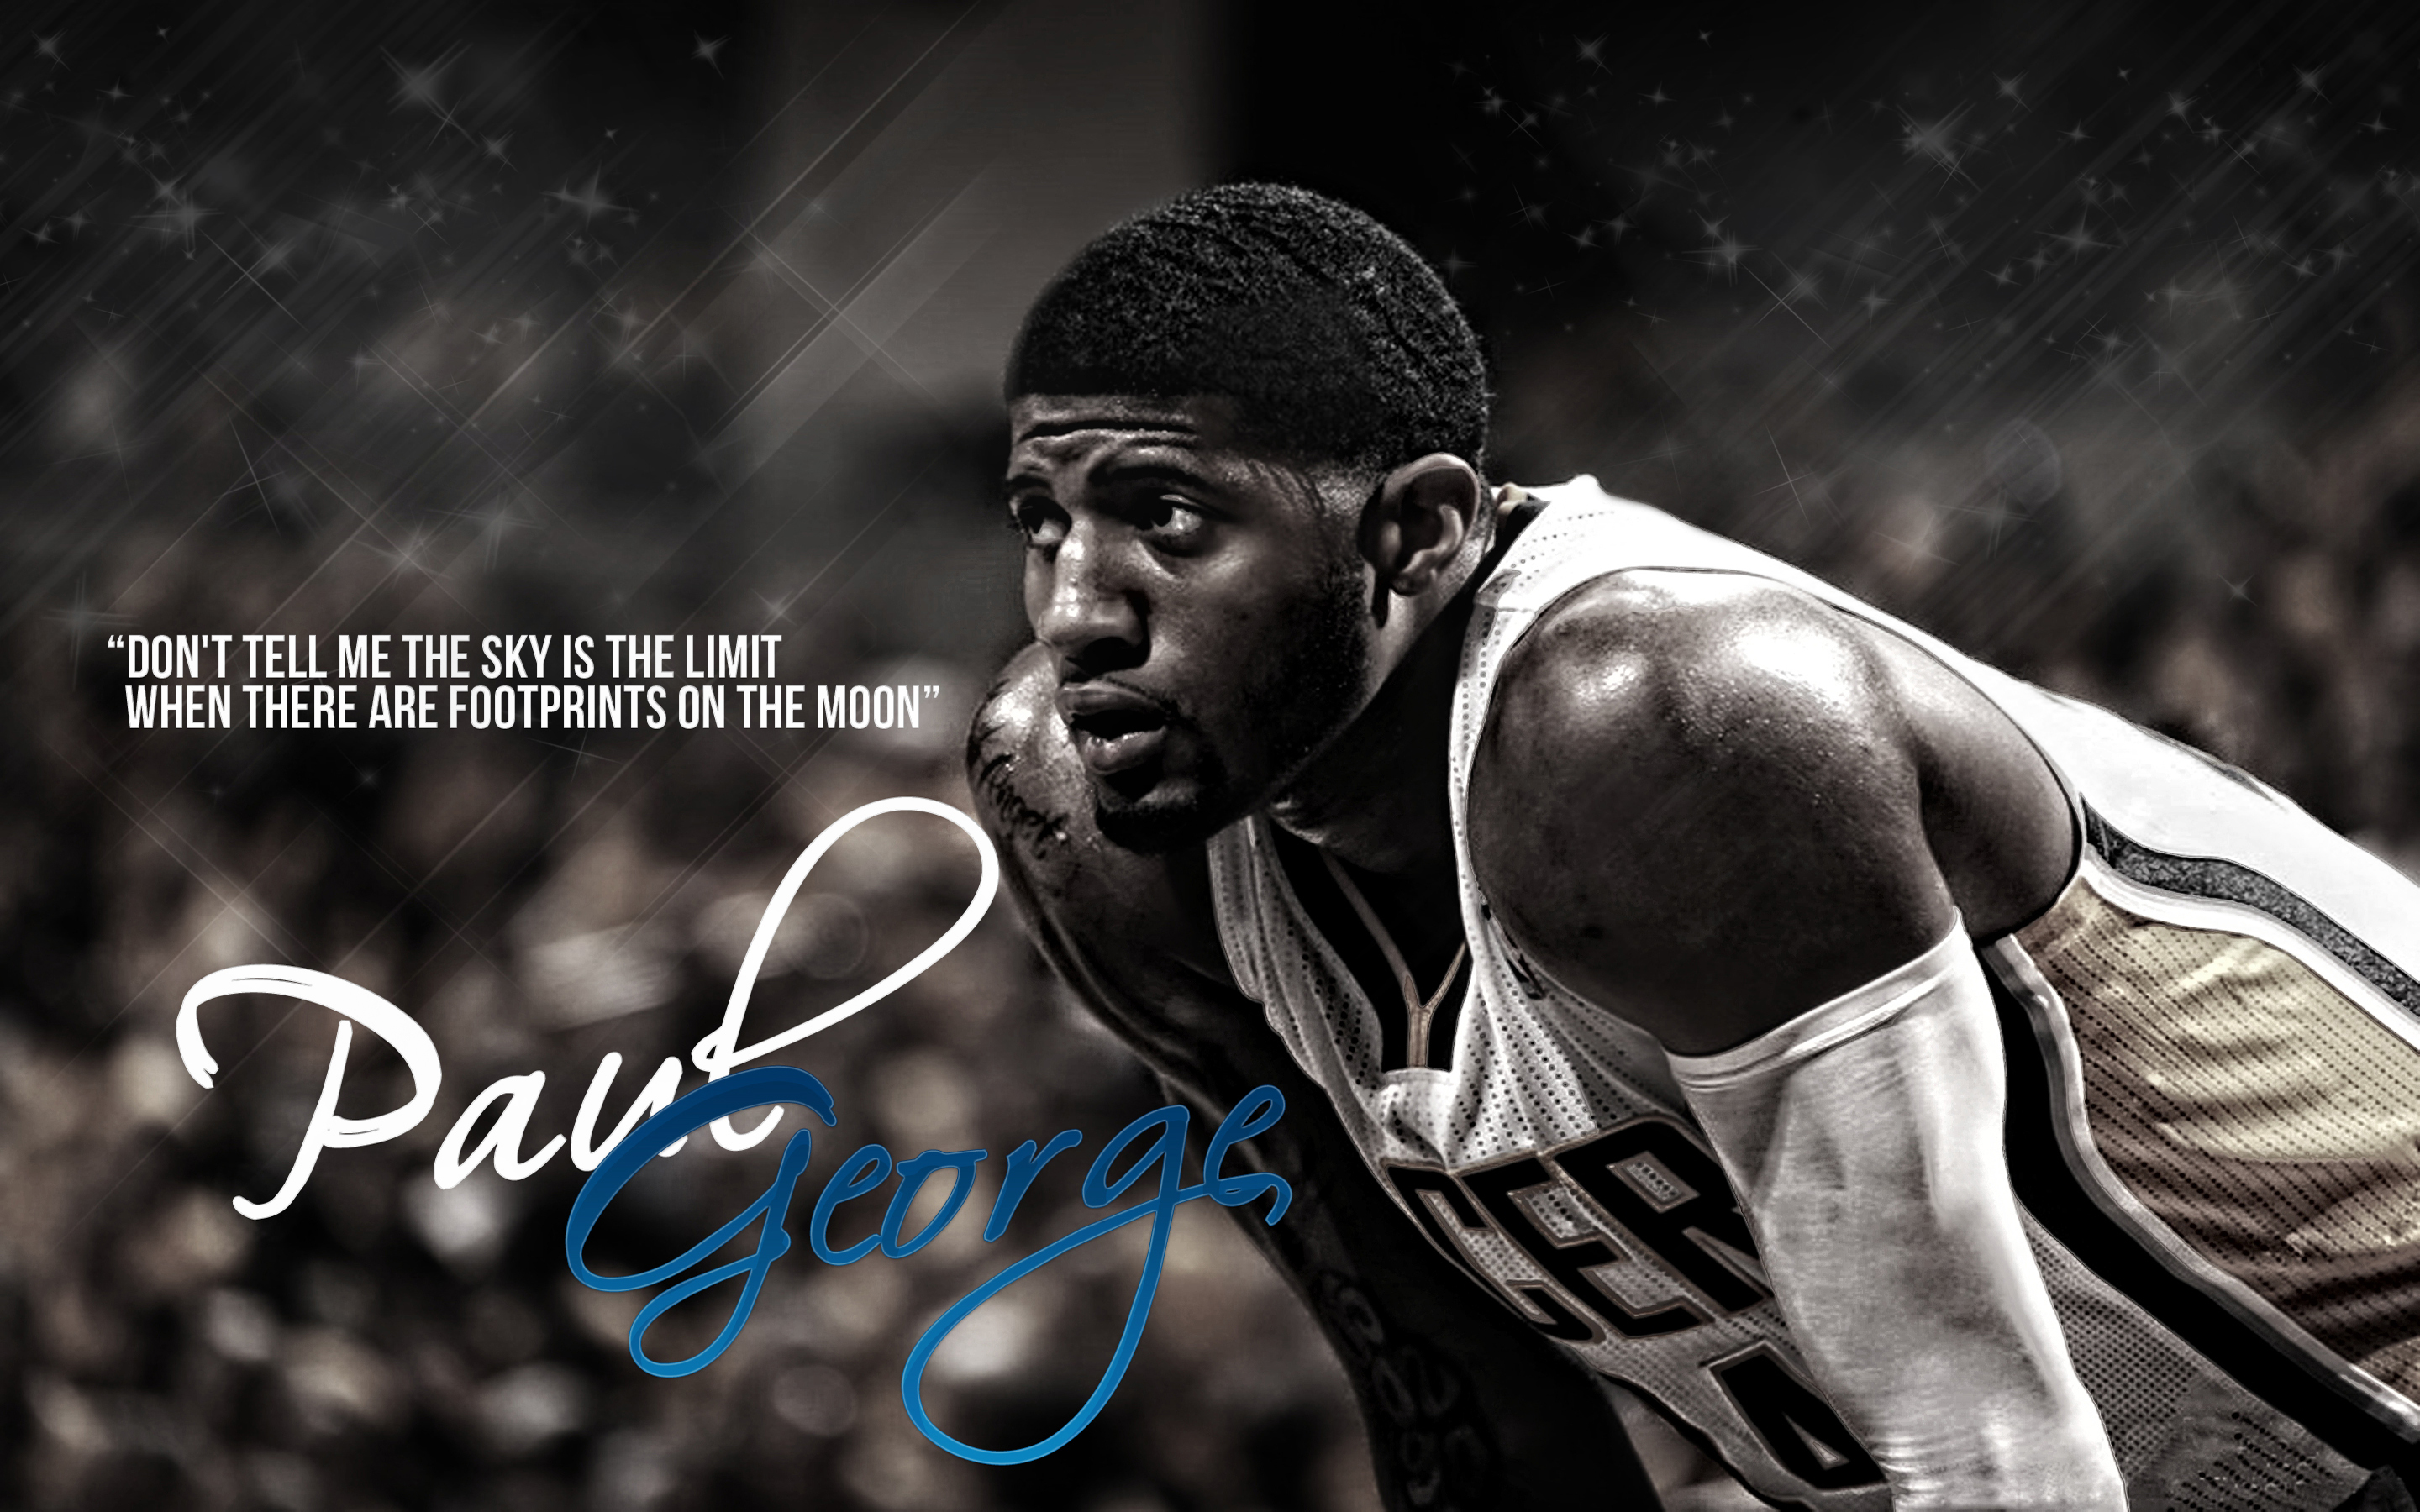 INDIANA PACERS nba basketball 20 wallpaper 2880x1800 227054 2880x1800